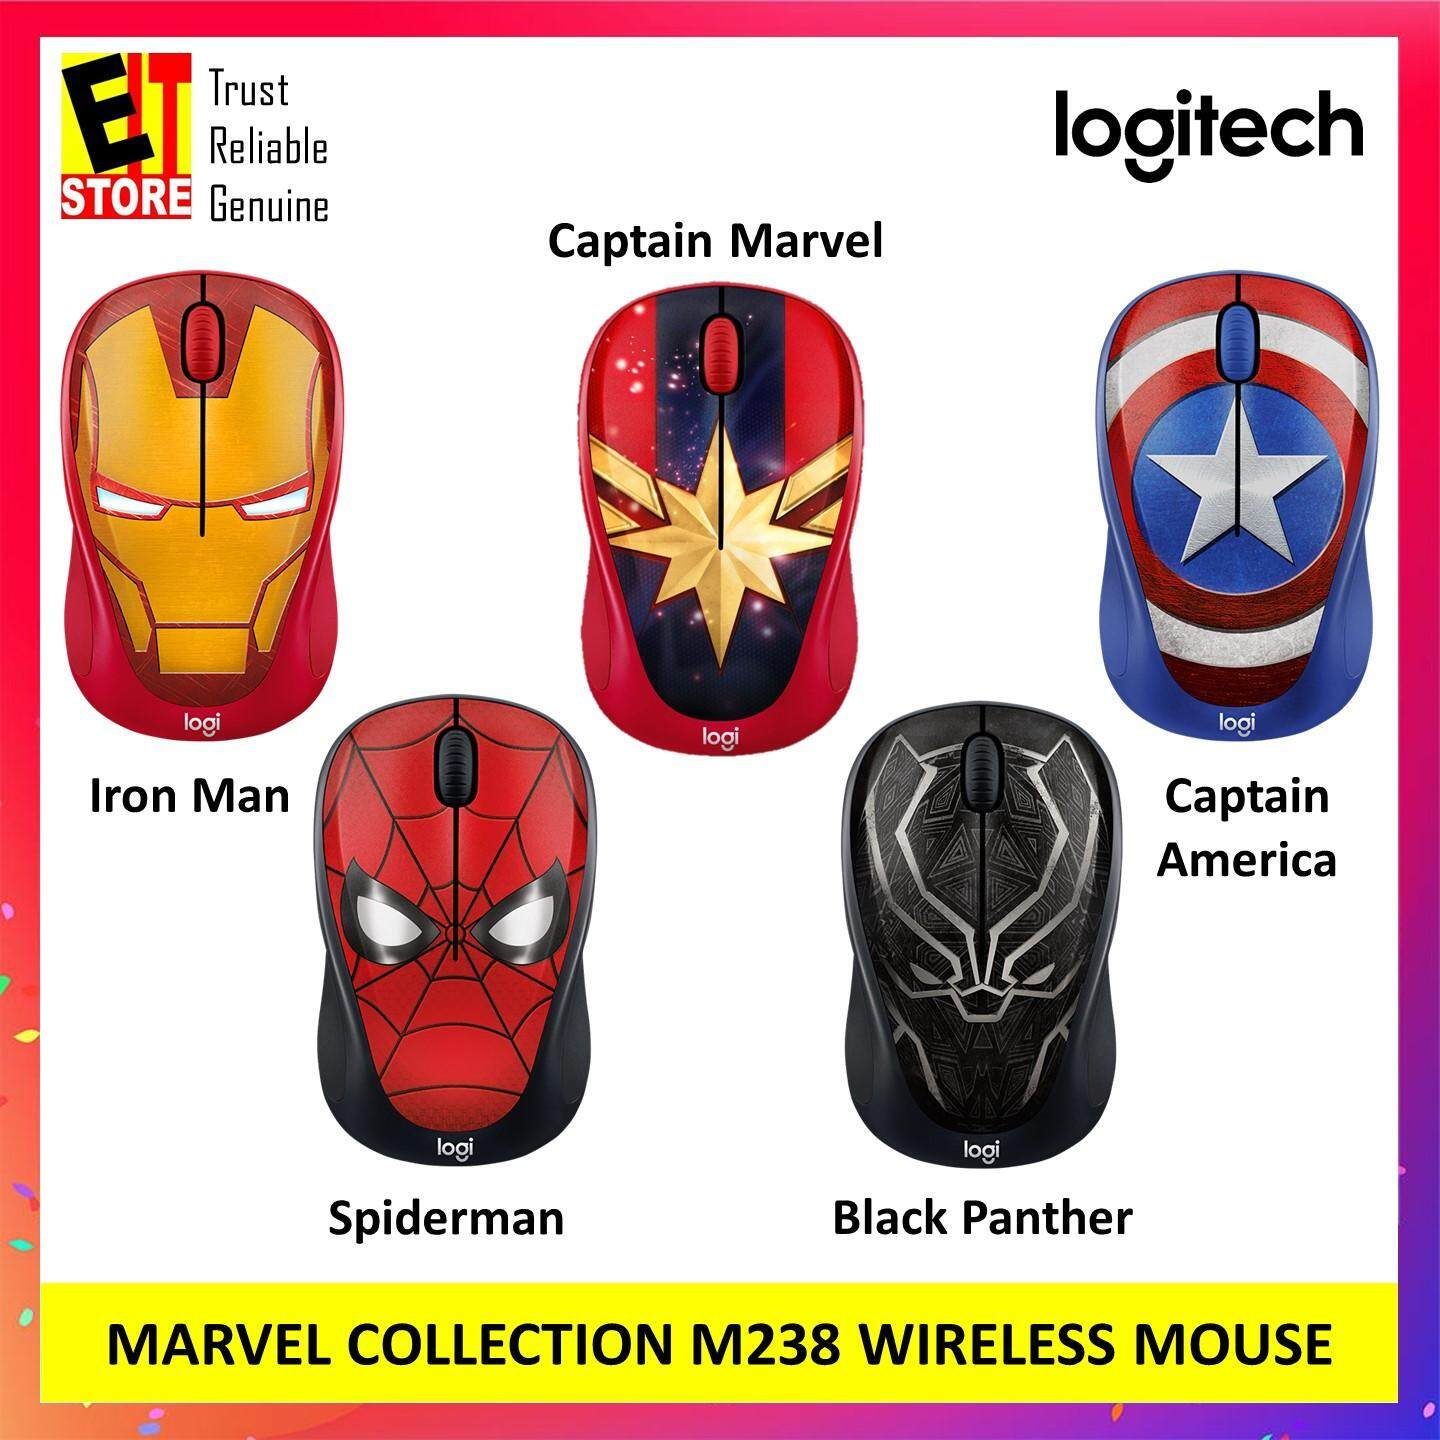 LOGITECH M238 MARVEL COLLECTION WIRELESS MOUSE Malaysia